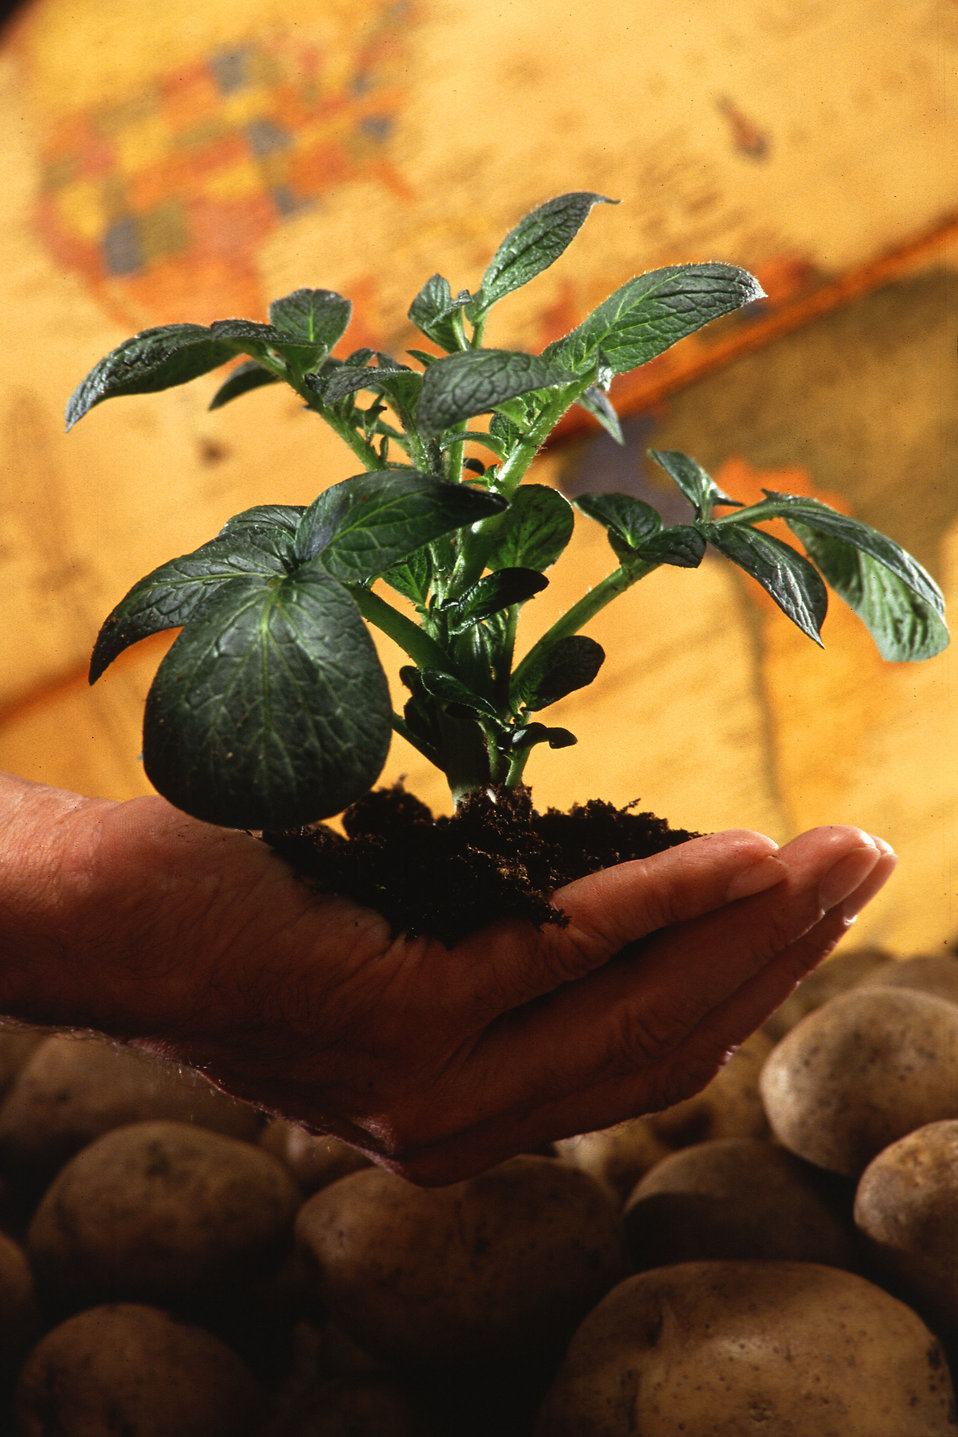 A hand holding a young potato plant : Free Stock Photo